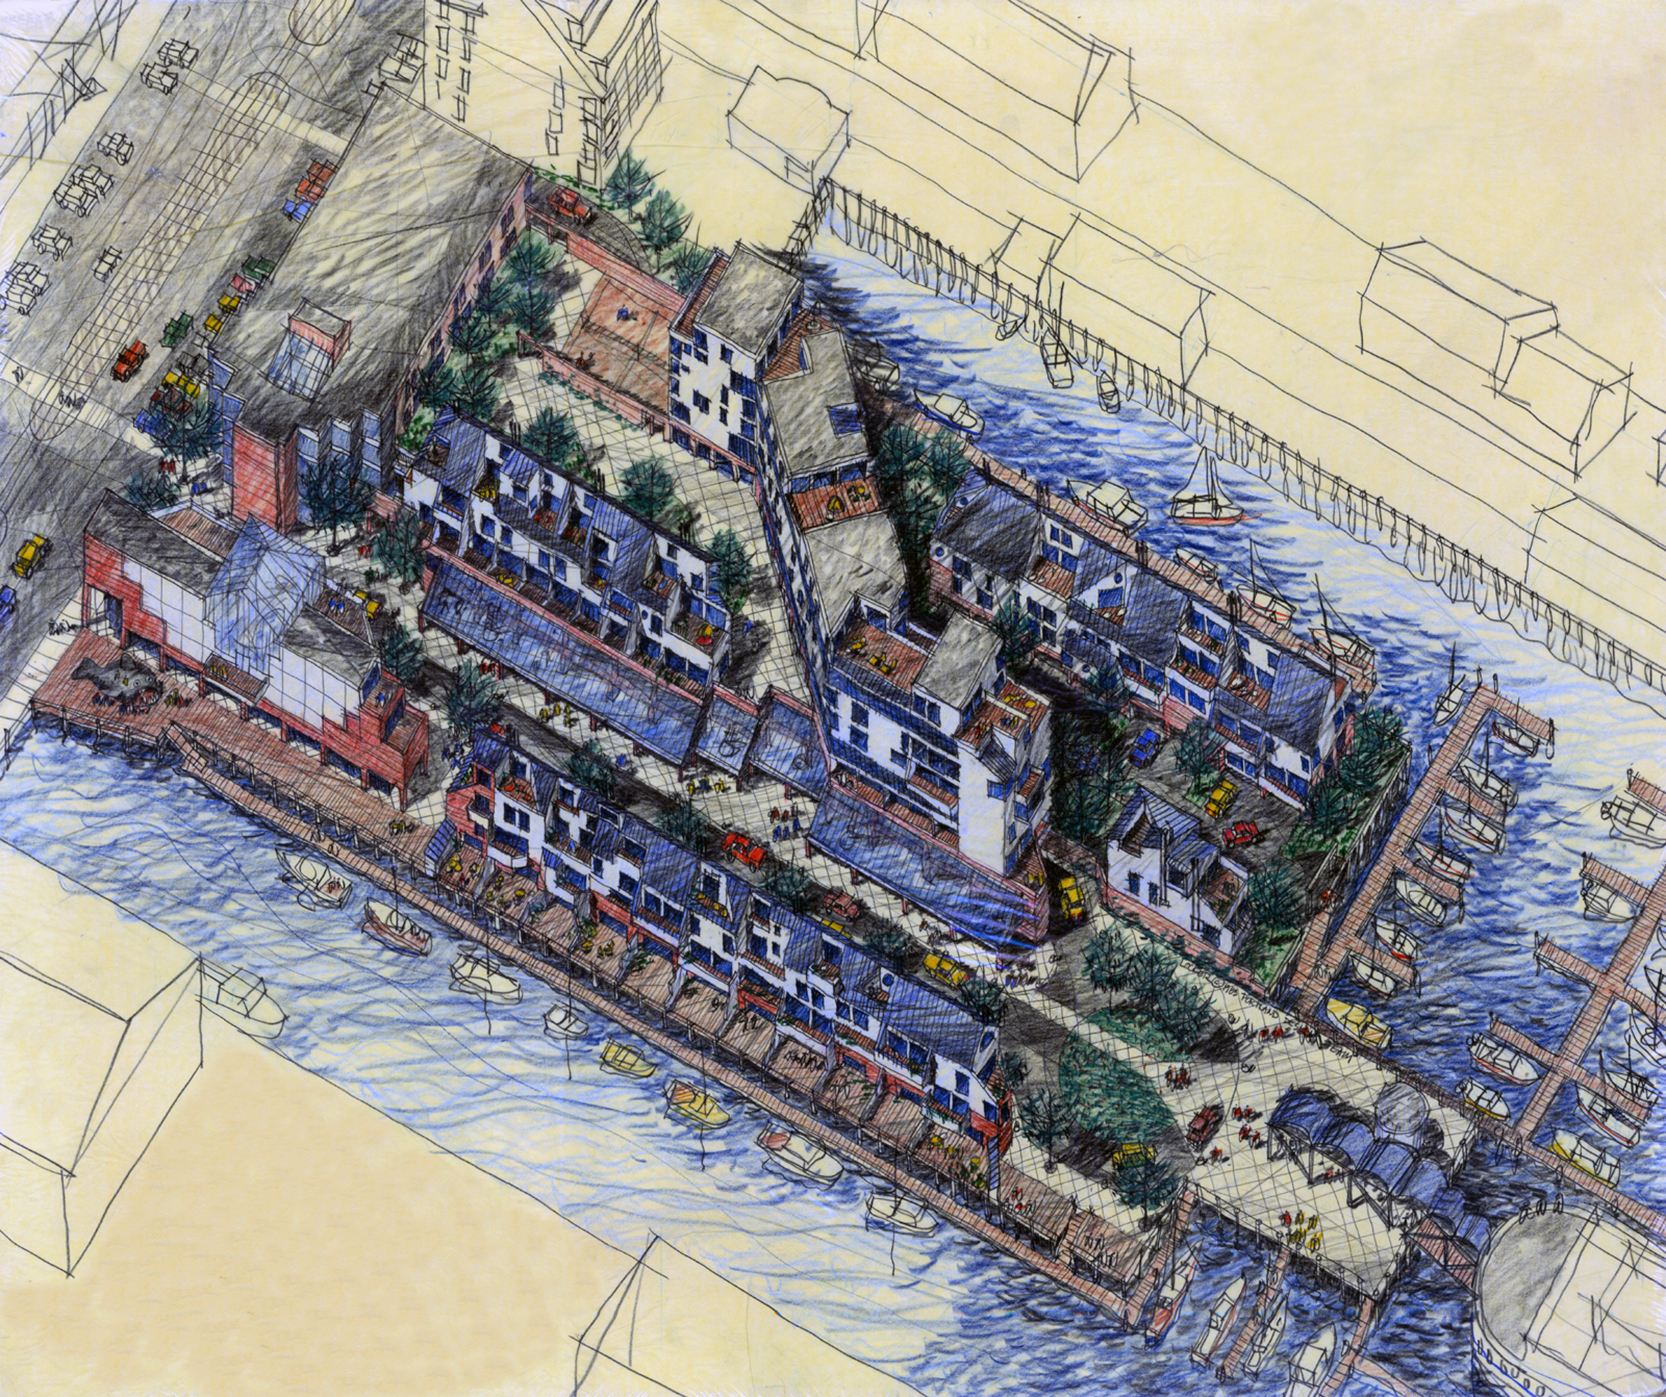 Birdseye view, proposed redevelopment of DiMillo's Wharf, Portland, 1970s